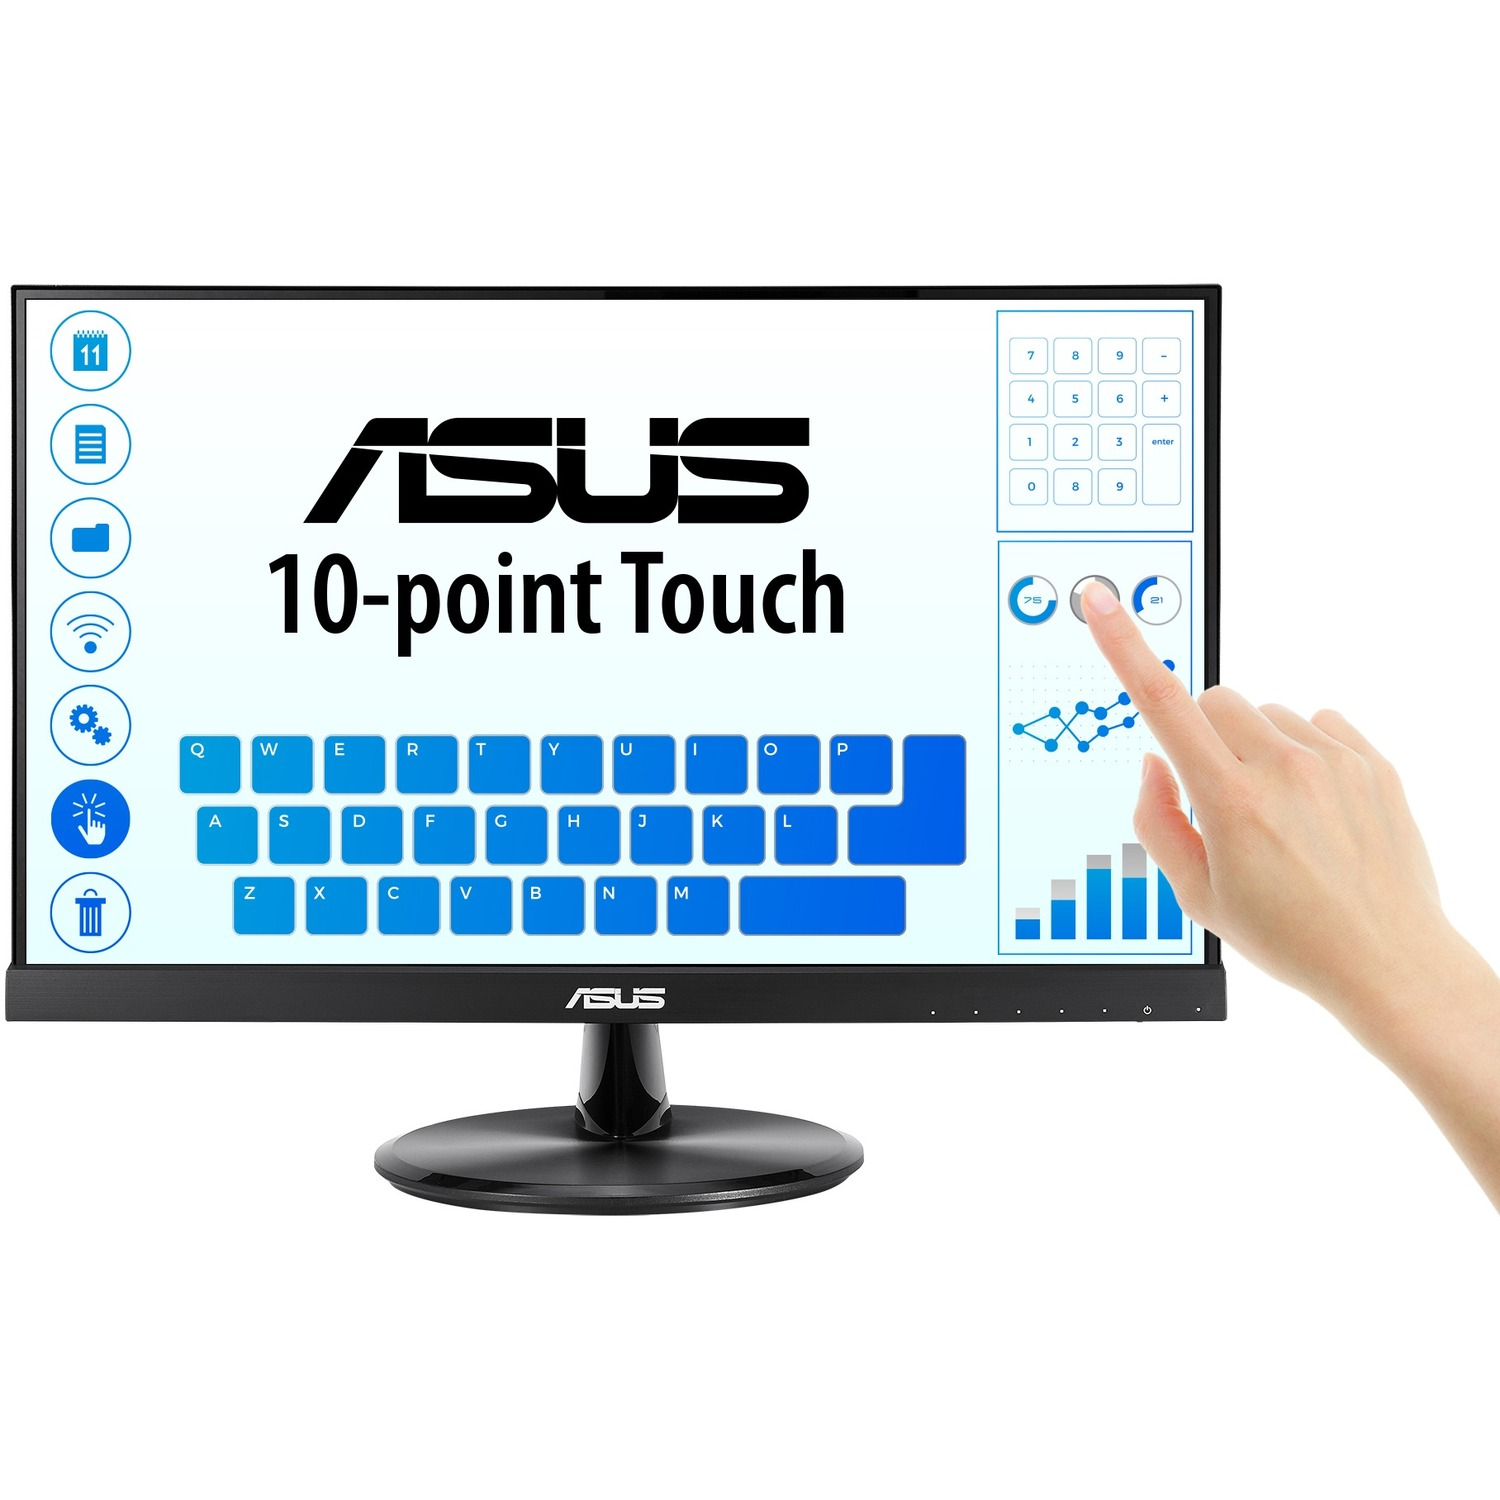 """Asus VT229H 21.5"""" LCD Touchscreen Monitor - 16:9 - 5 ms GTG_subImage_1"""